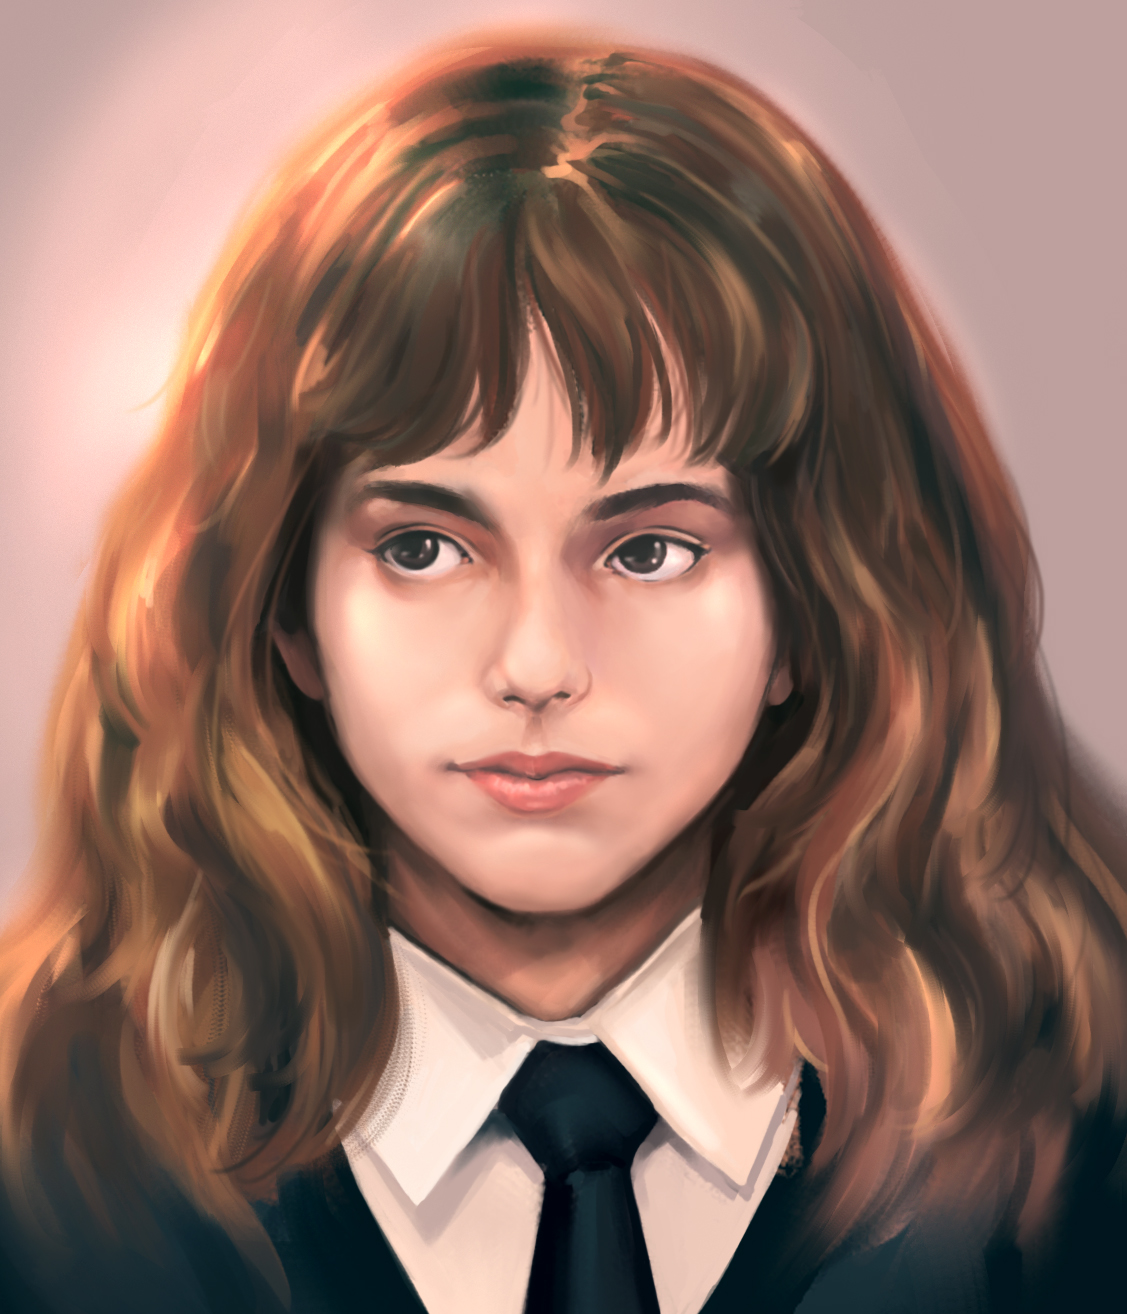 a story of hermione granger Instead, hermione granger, born on september 19, who begins her journey as a brainy, hand-in-the-air teacher's pet and ends it as an unshakeable heroine and the smartest wizard of her generation.